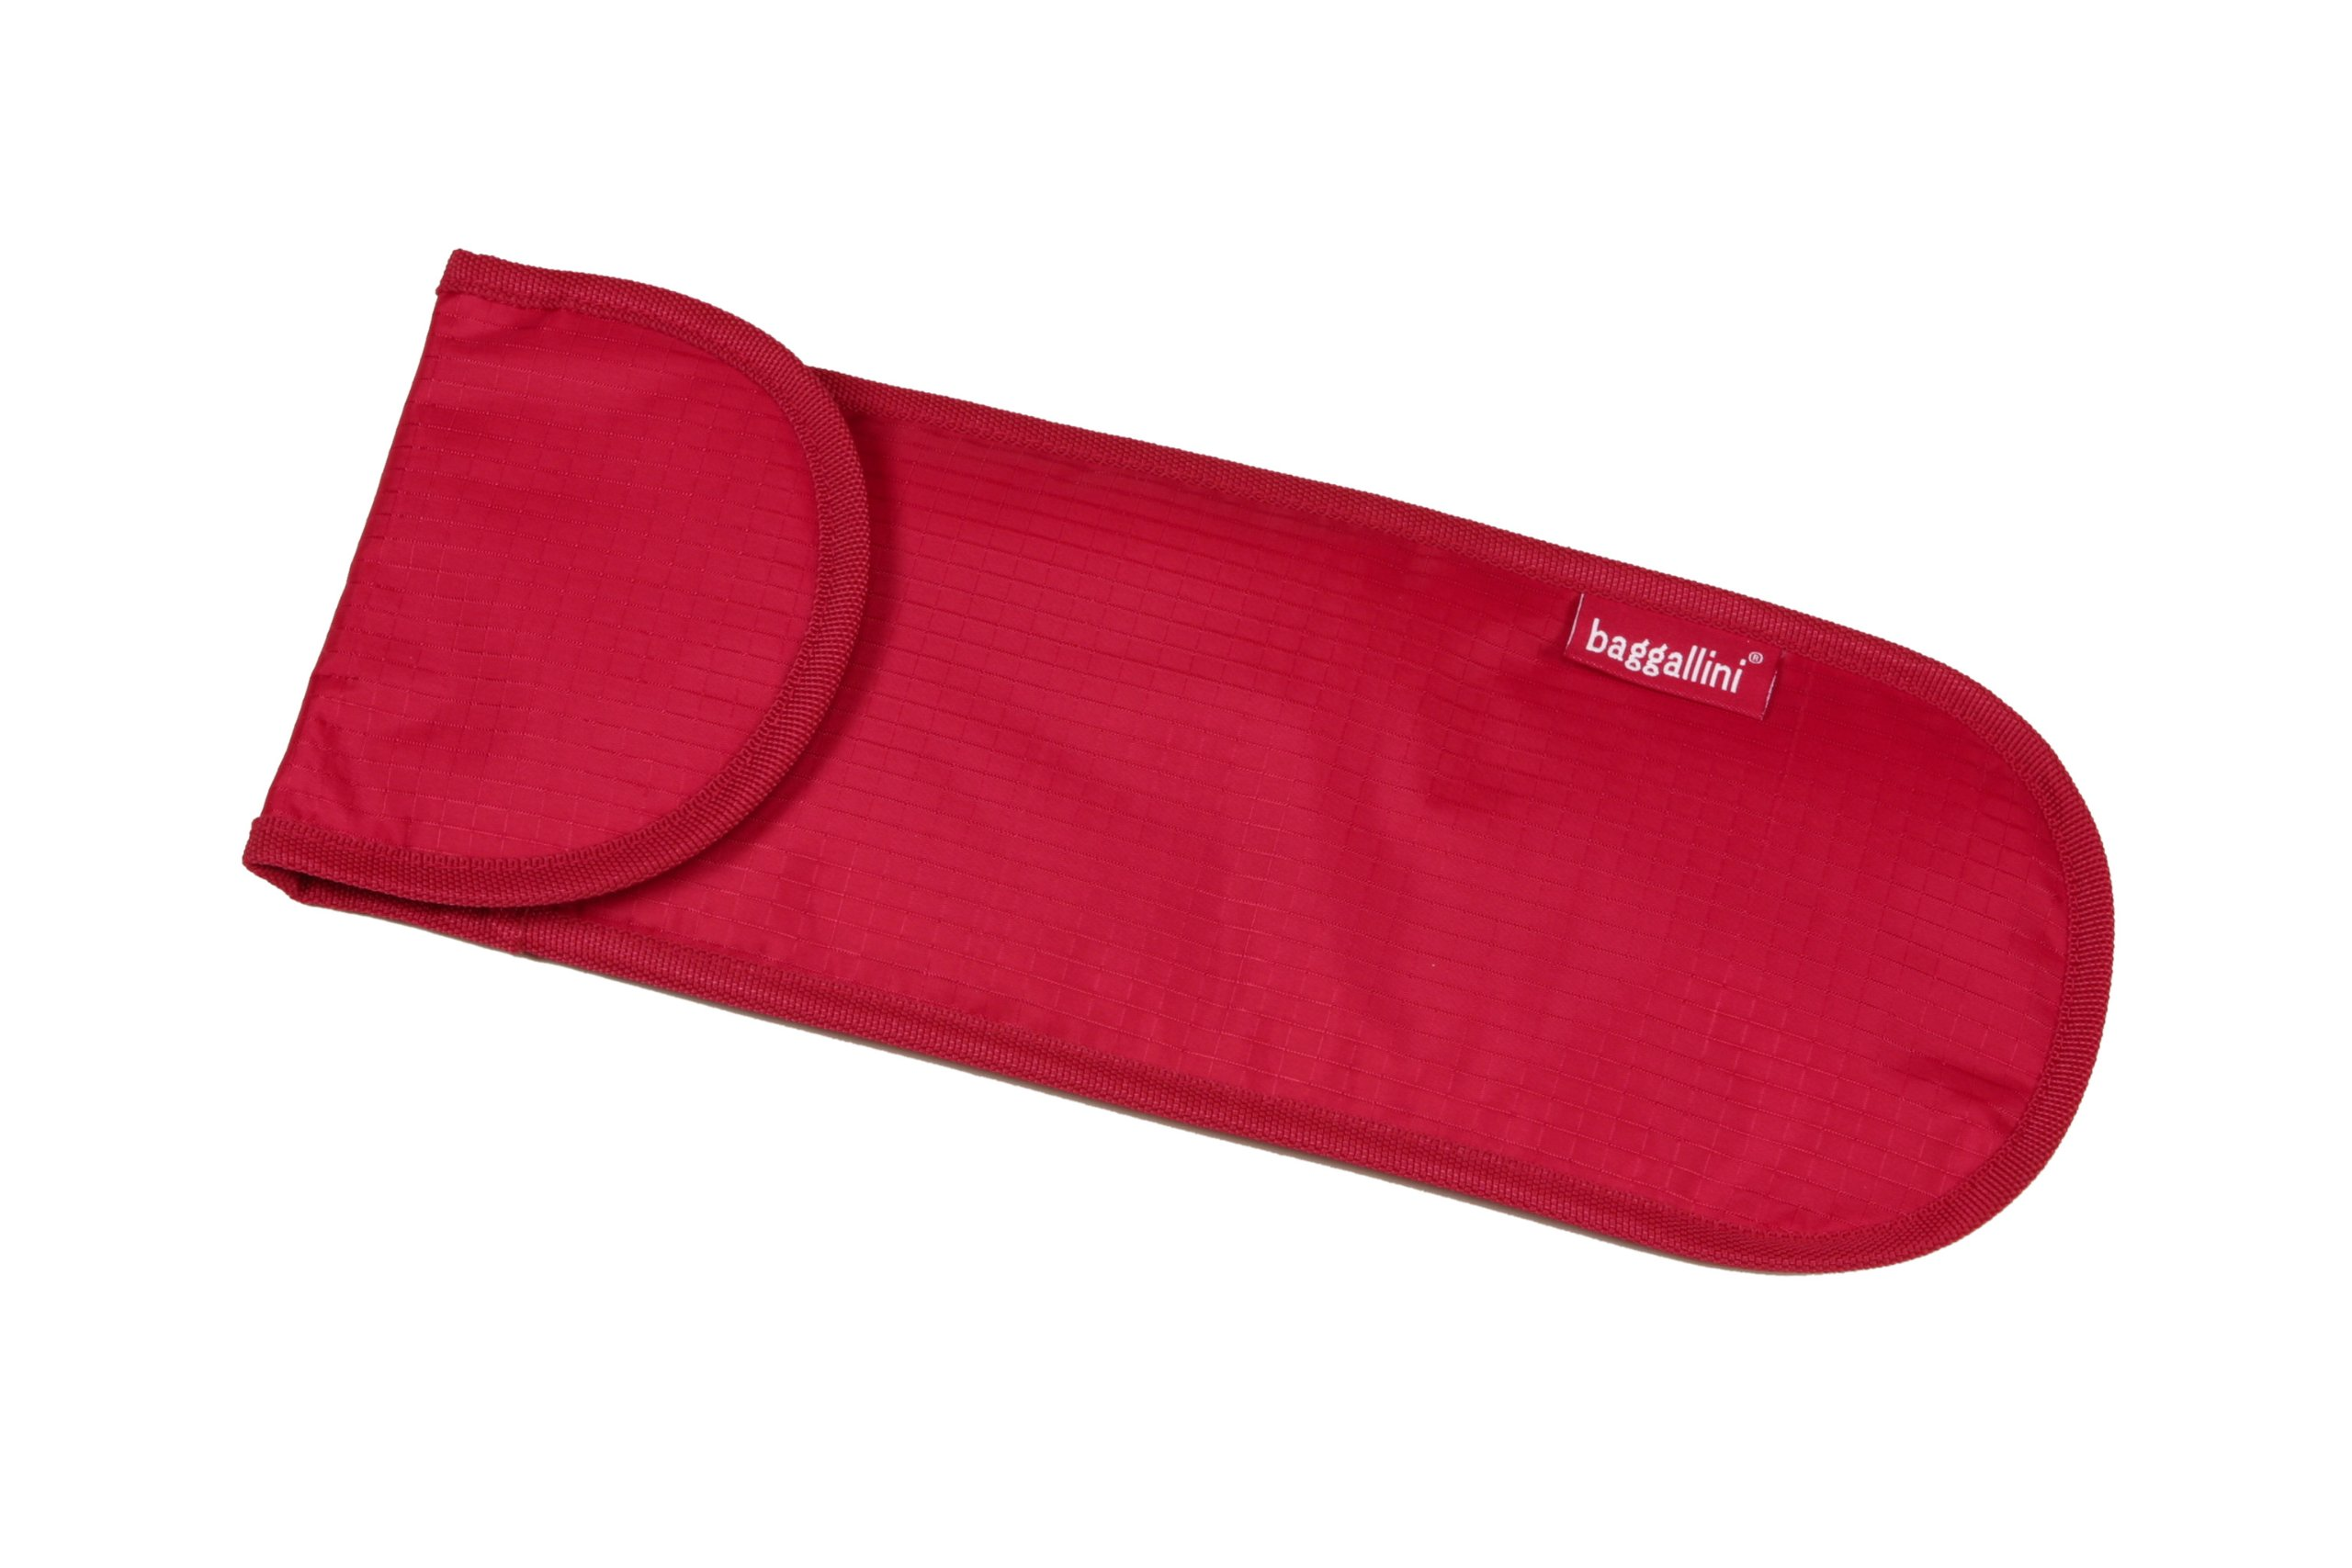 Baggallini Curling Iron Cover, Red, One Size